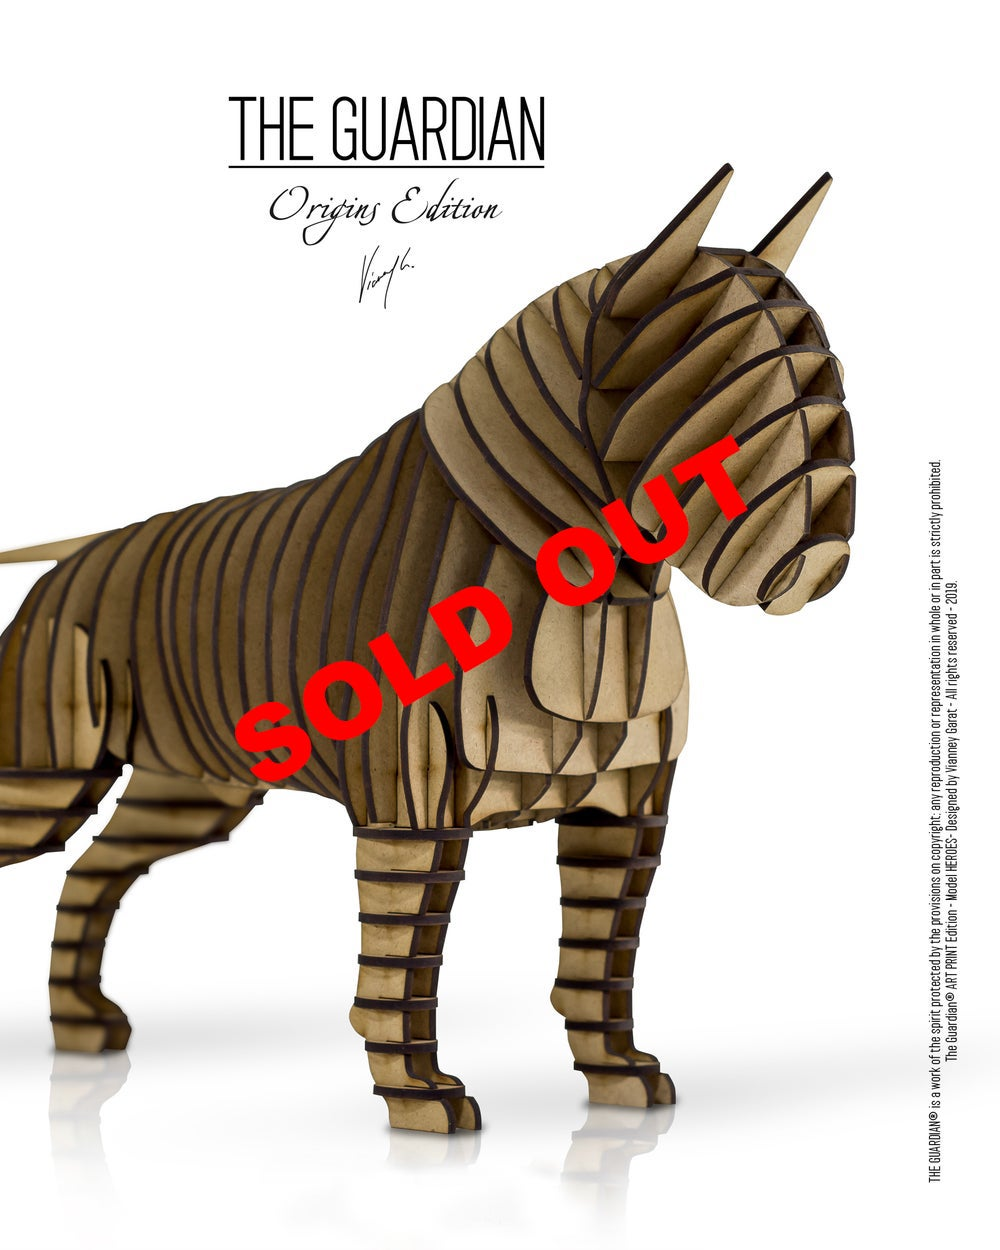 Image of The Guardian® - Origins Edition - Limited edition - 100 units